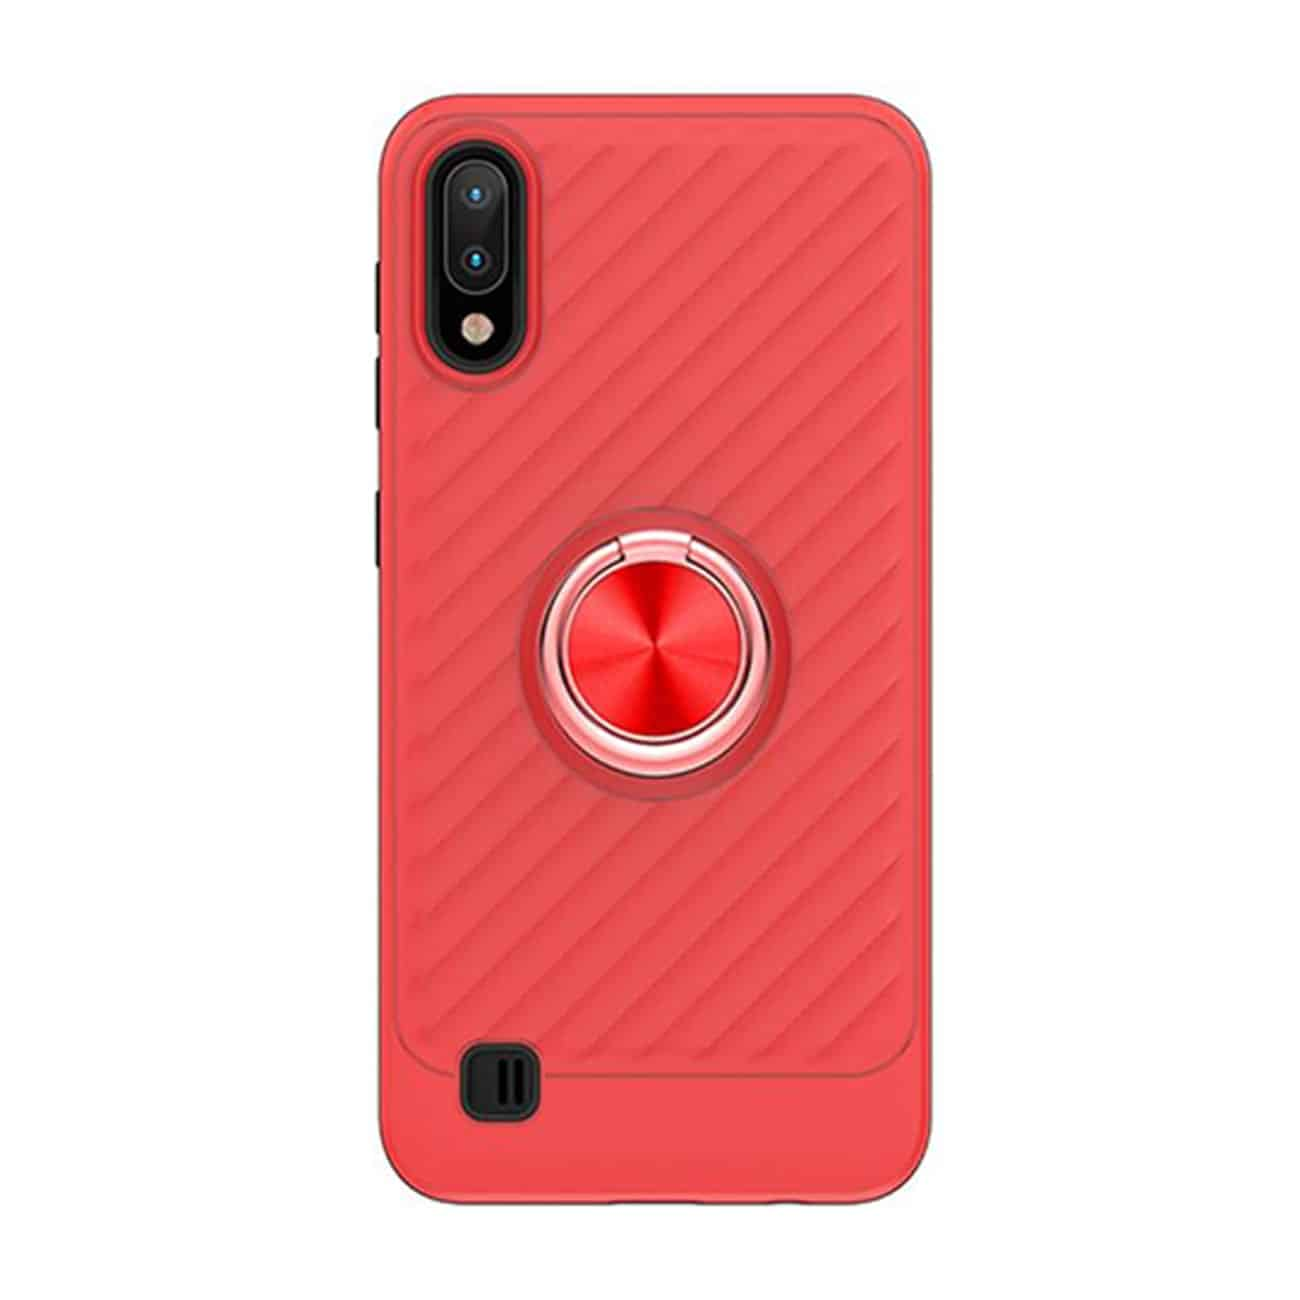 SAMSUNG GALAXY A10/M10 Case with Ring Holder In Red